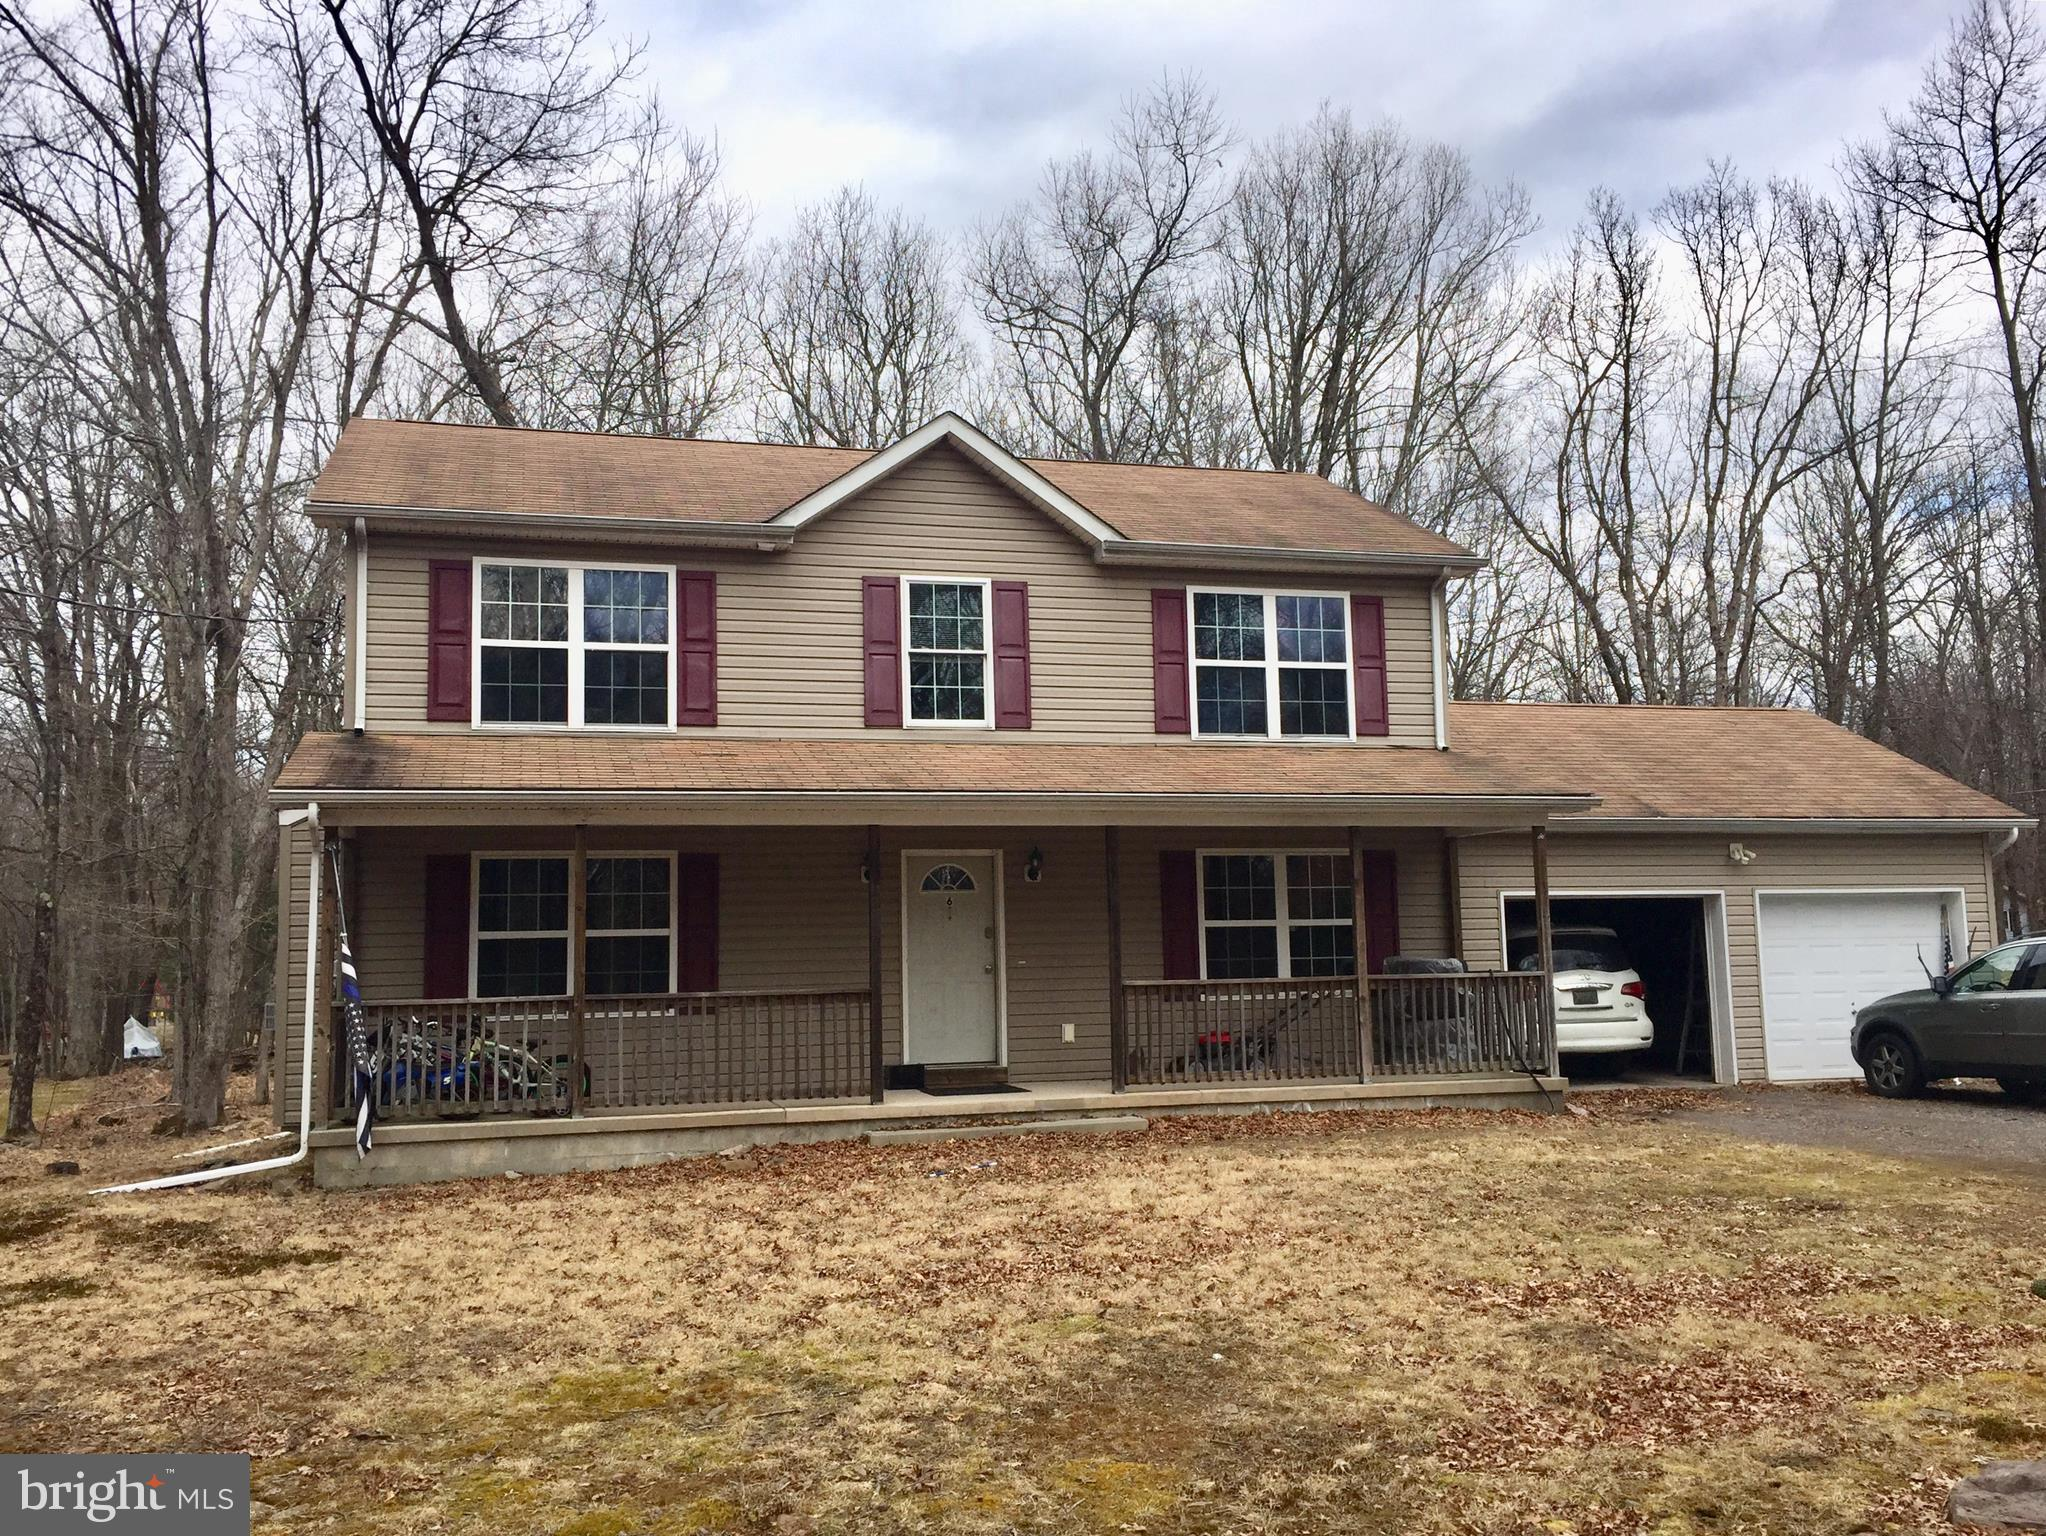 6 PINETREE ROAD, ALBRIGHTSVILLE, PA 18210